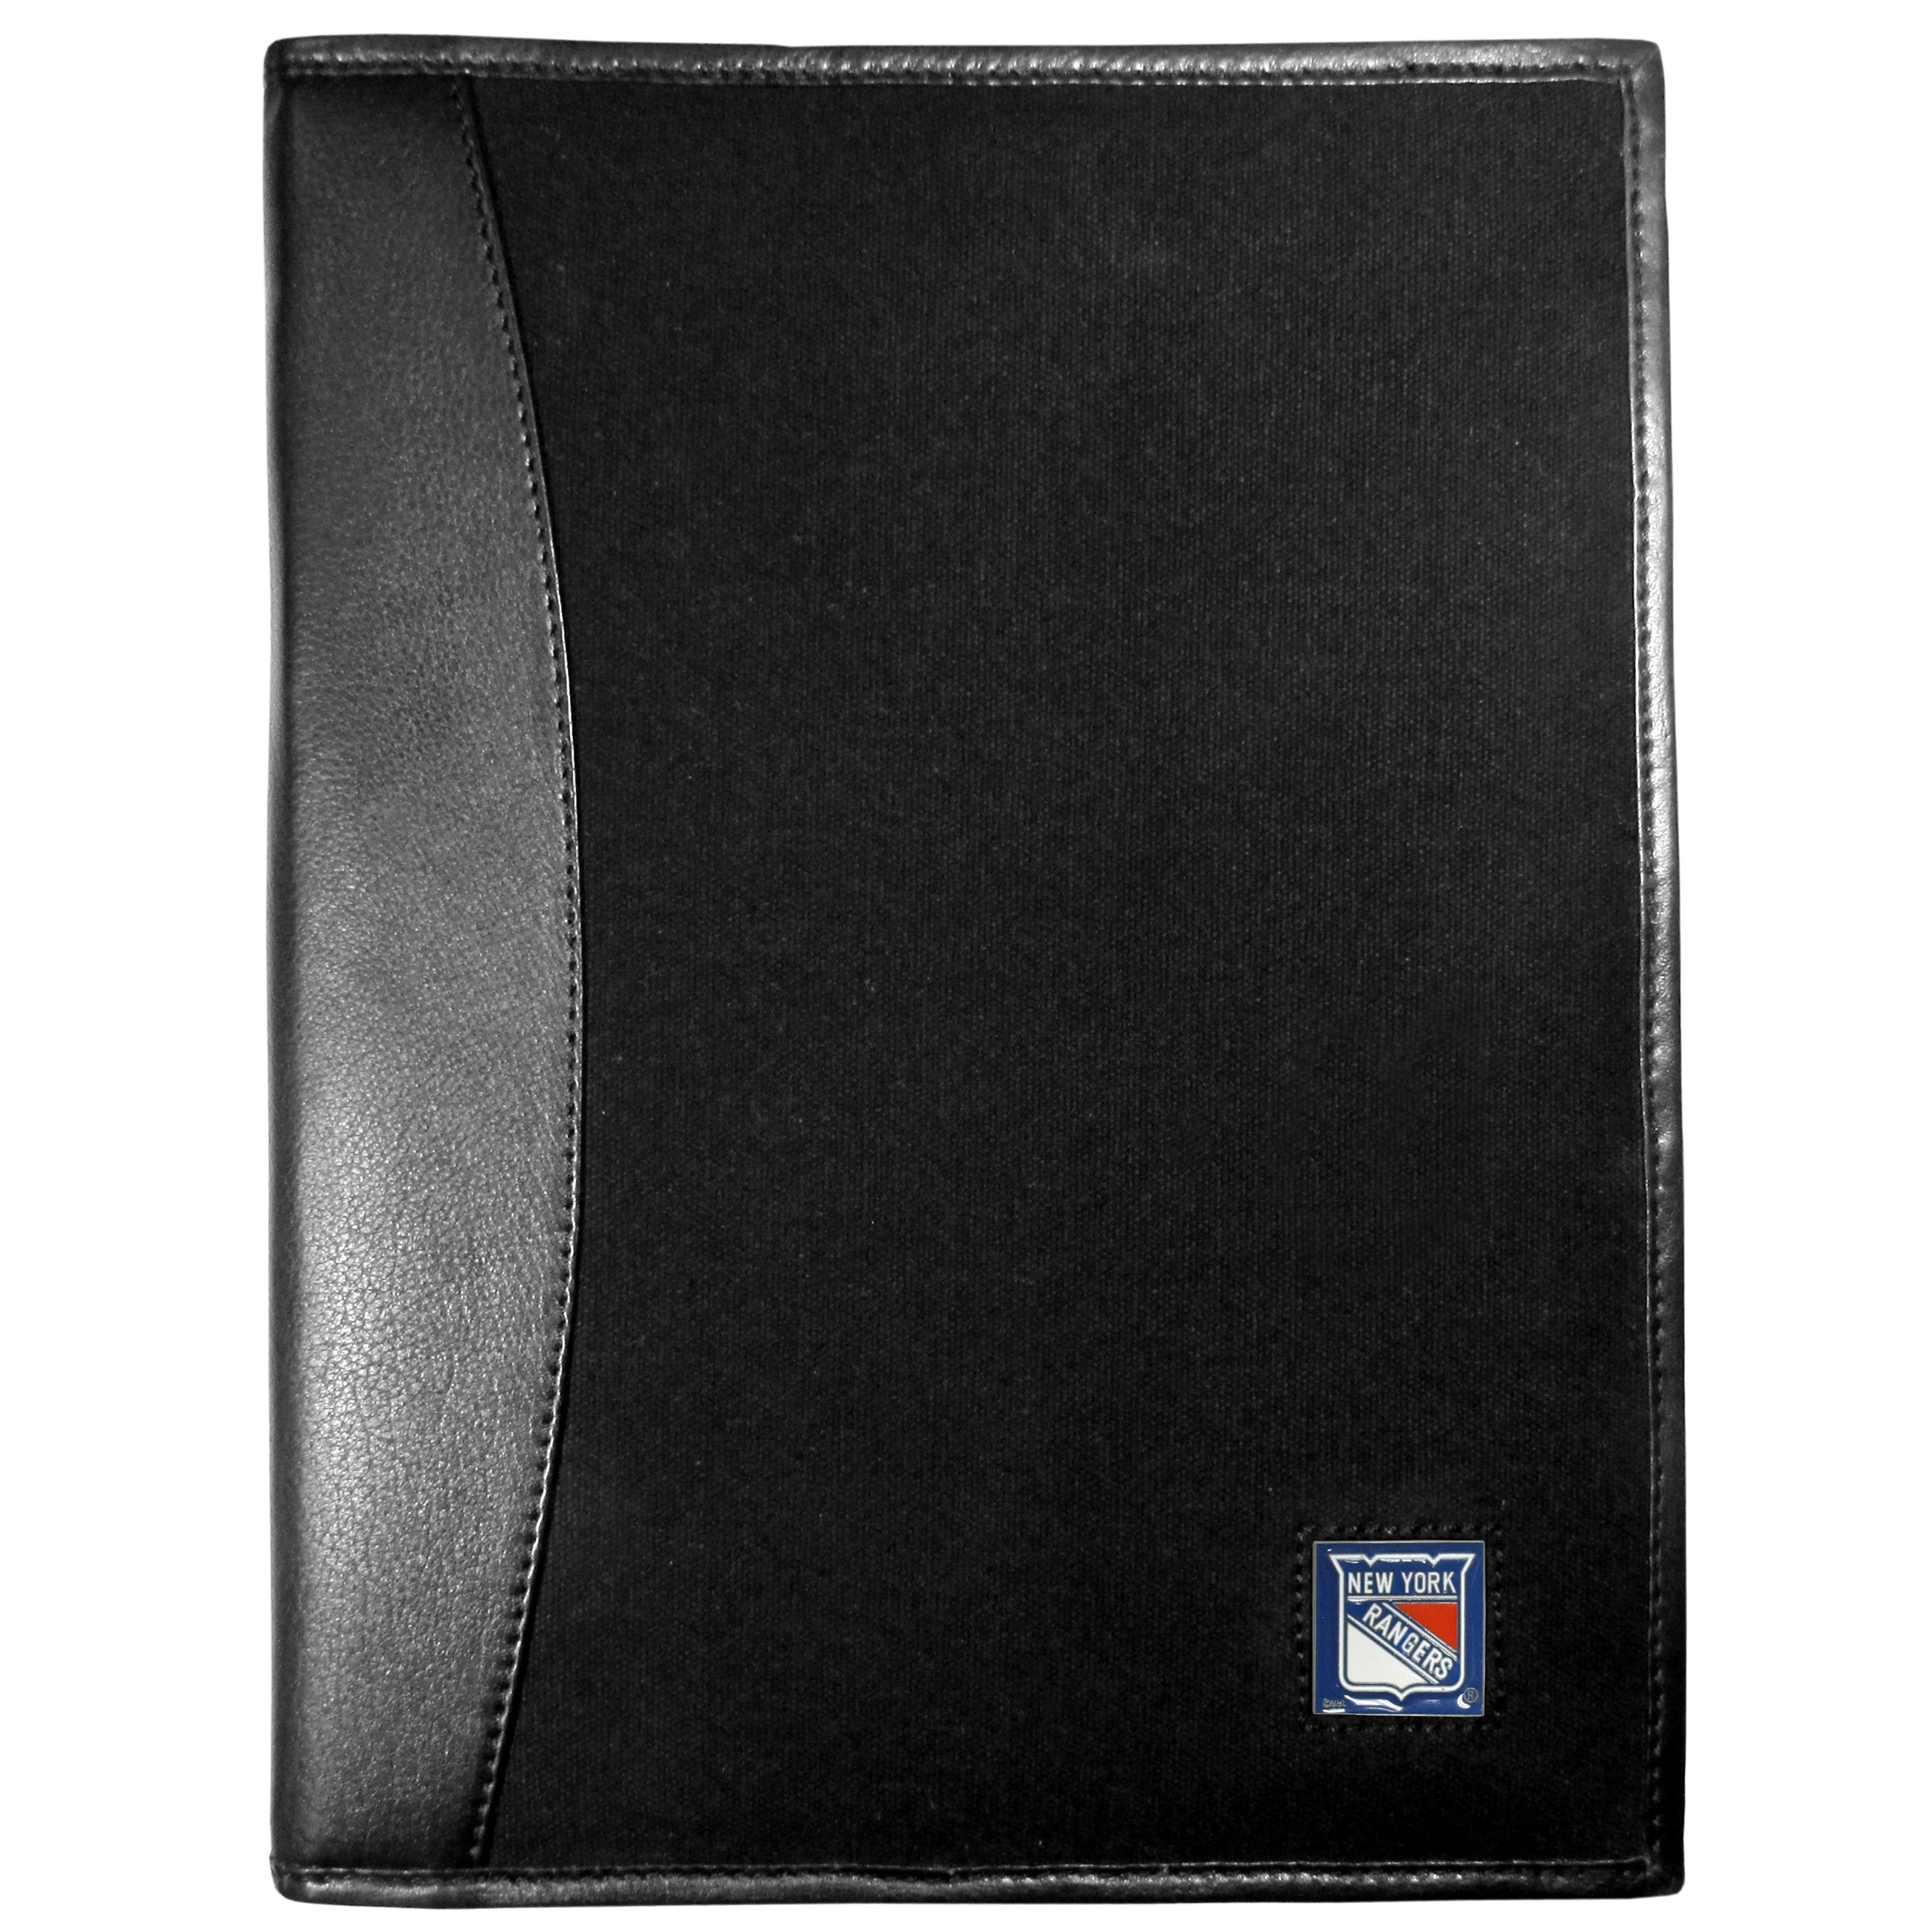 New York Rangers® Leather and Canvas Padfolio - Our leather and canvas padfolio perfectly blends form and function. The attractive portfolio is bound in fine grain leather with an attractive canvas finish and the interior is a soft nylon. This high quality business accessory also features a fully cast metal New York Rangers® emblem that is subtly set in the corner of the organizer. It is packed with features like 6 card slots for badges, business cards, hotel keys or credit cards and ID with a large pocket for loose papers and a writing tablet slot making it a must-have for the professional on the go.